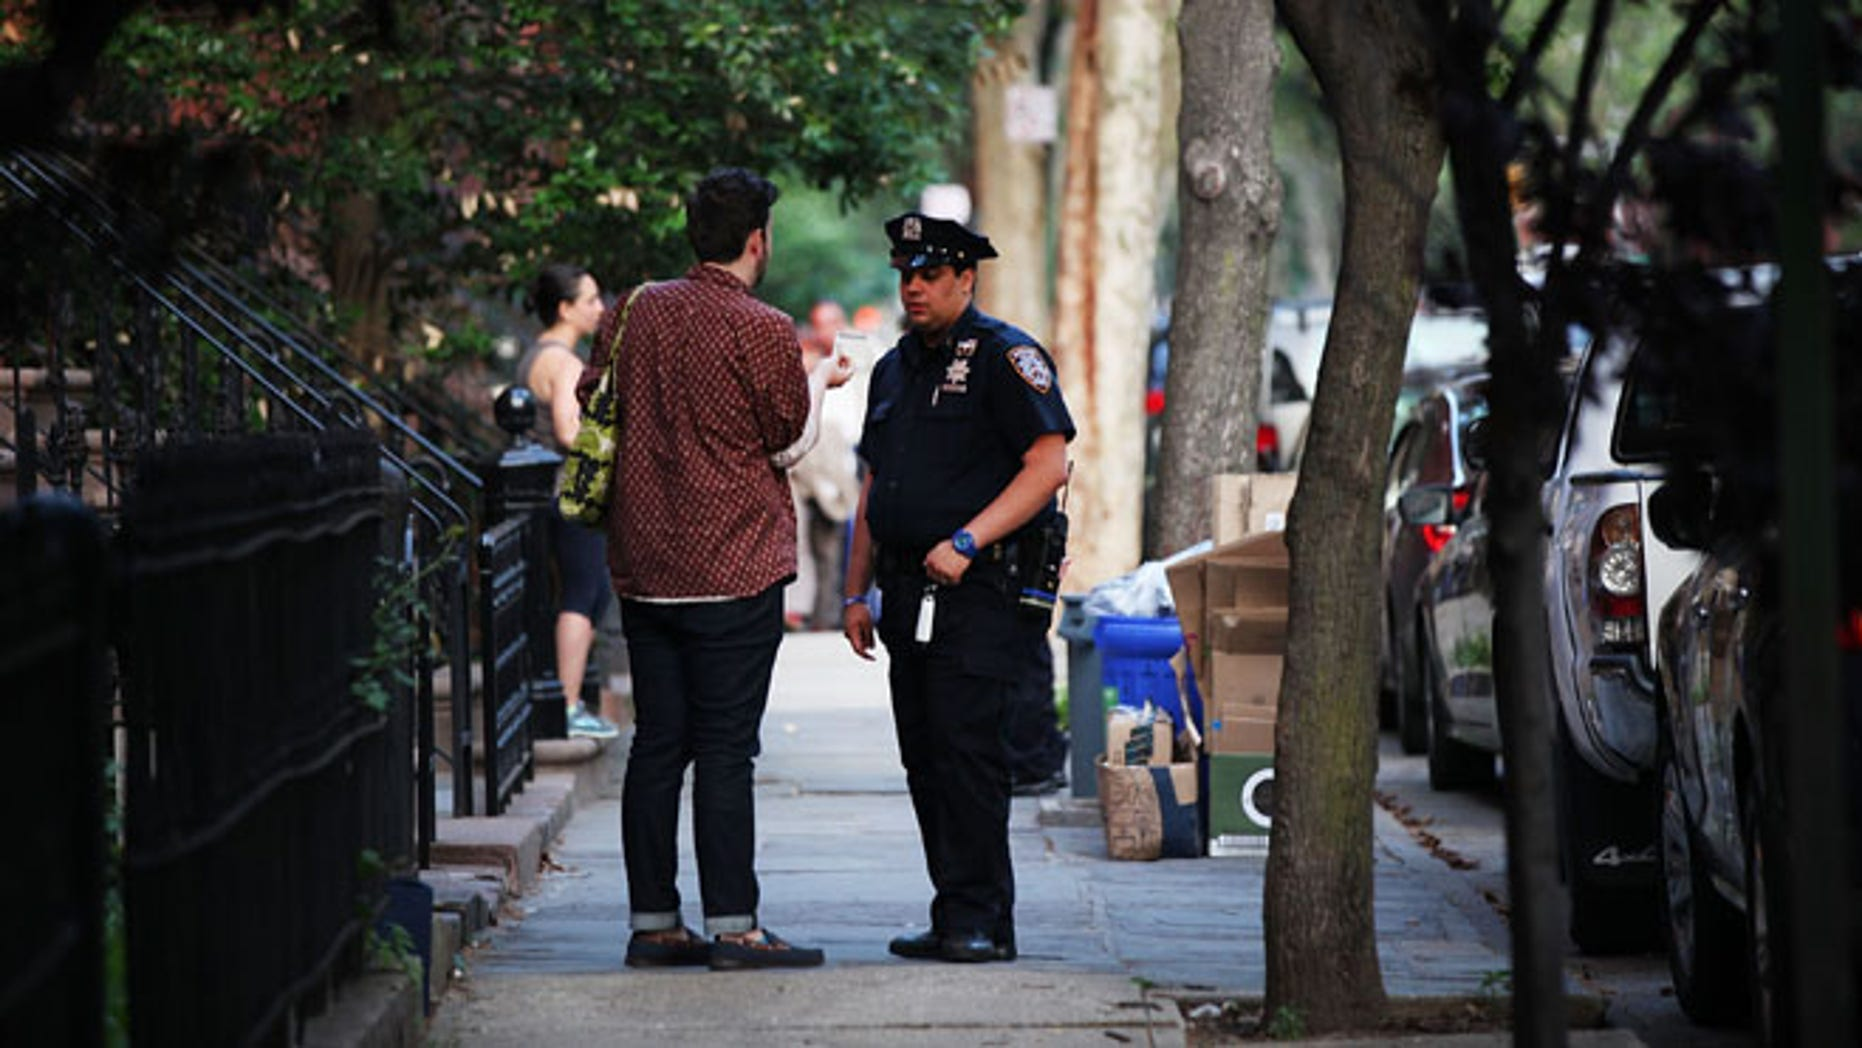 """NEW YORK, NY - JUNE 10:  Police officers are seen by a crime scene where three people were shot on June 10, 2015 in the Gowanus area of the Brooklyn Borough of New York City. In an effort to combat the rise in murders and shootings, hundreds of additional New York City Police Officers will begin walking city streets as part of an aggressive NYPD initiative called """"Summer All Out."""" About 330 officers will be taken off of administrative duty to patrol the streets in some of the city's most violent neighborhoods.  (Photo by Spencer Platt/Getty Images)"""